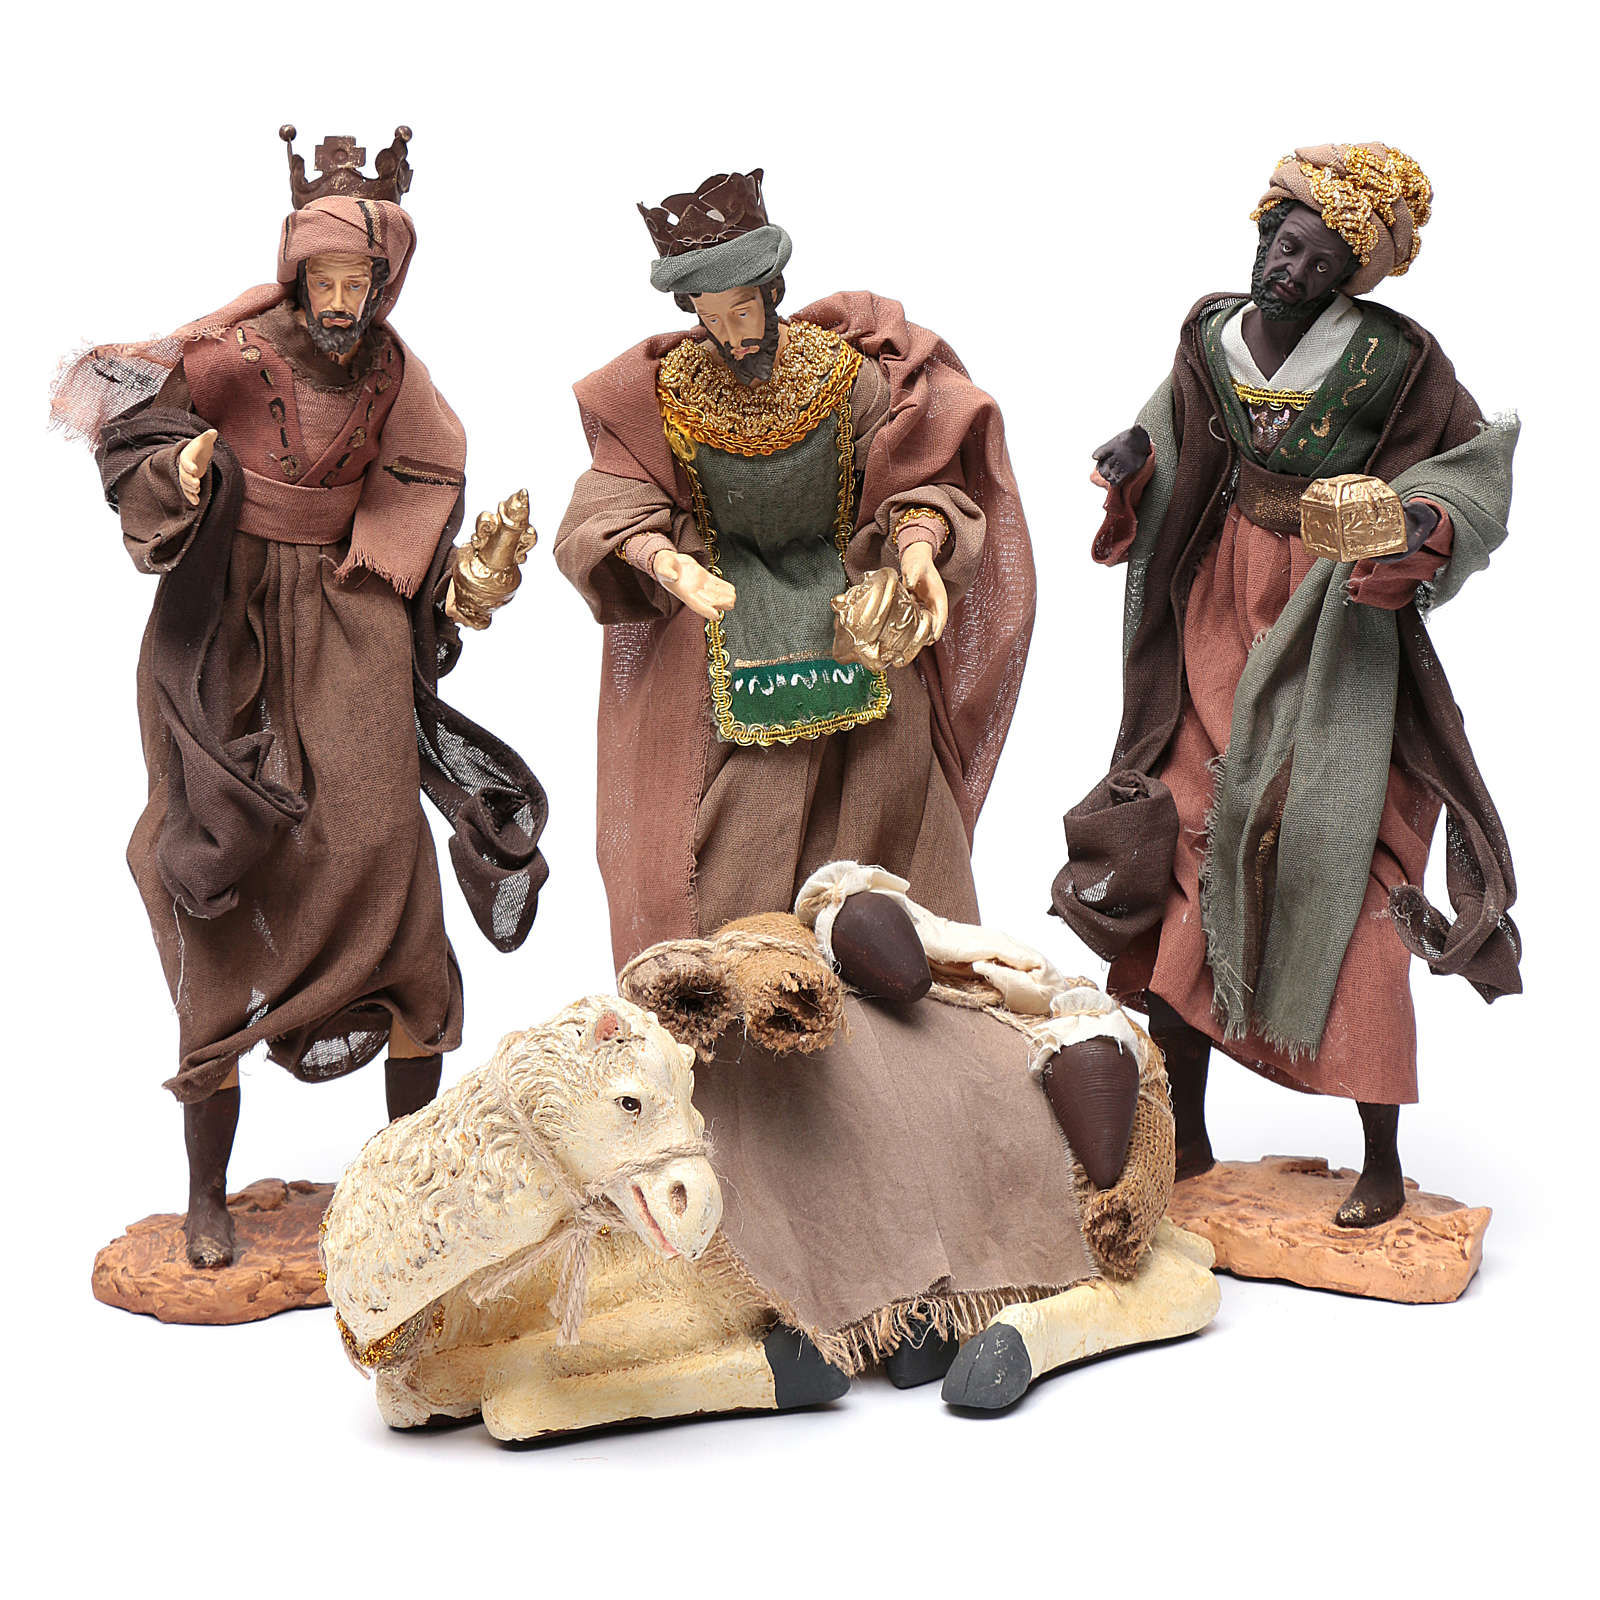 Nativity scene statue The Three Wise Men with camel sitting 28 cm gauze and resin 3